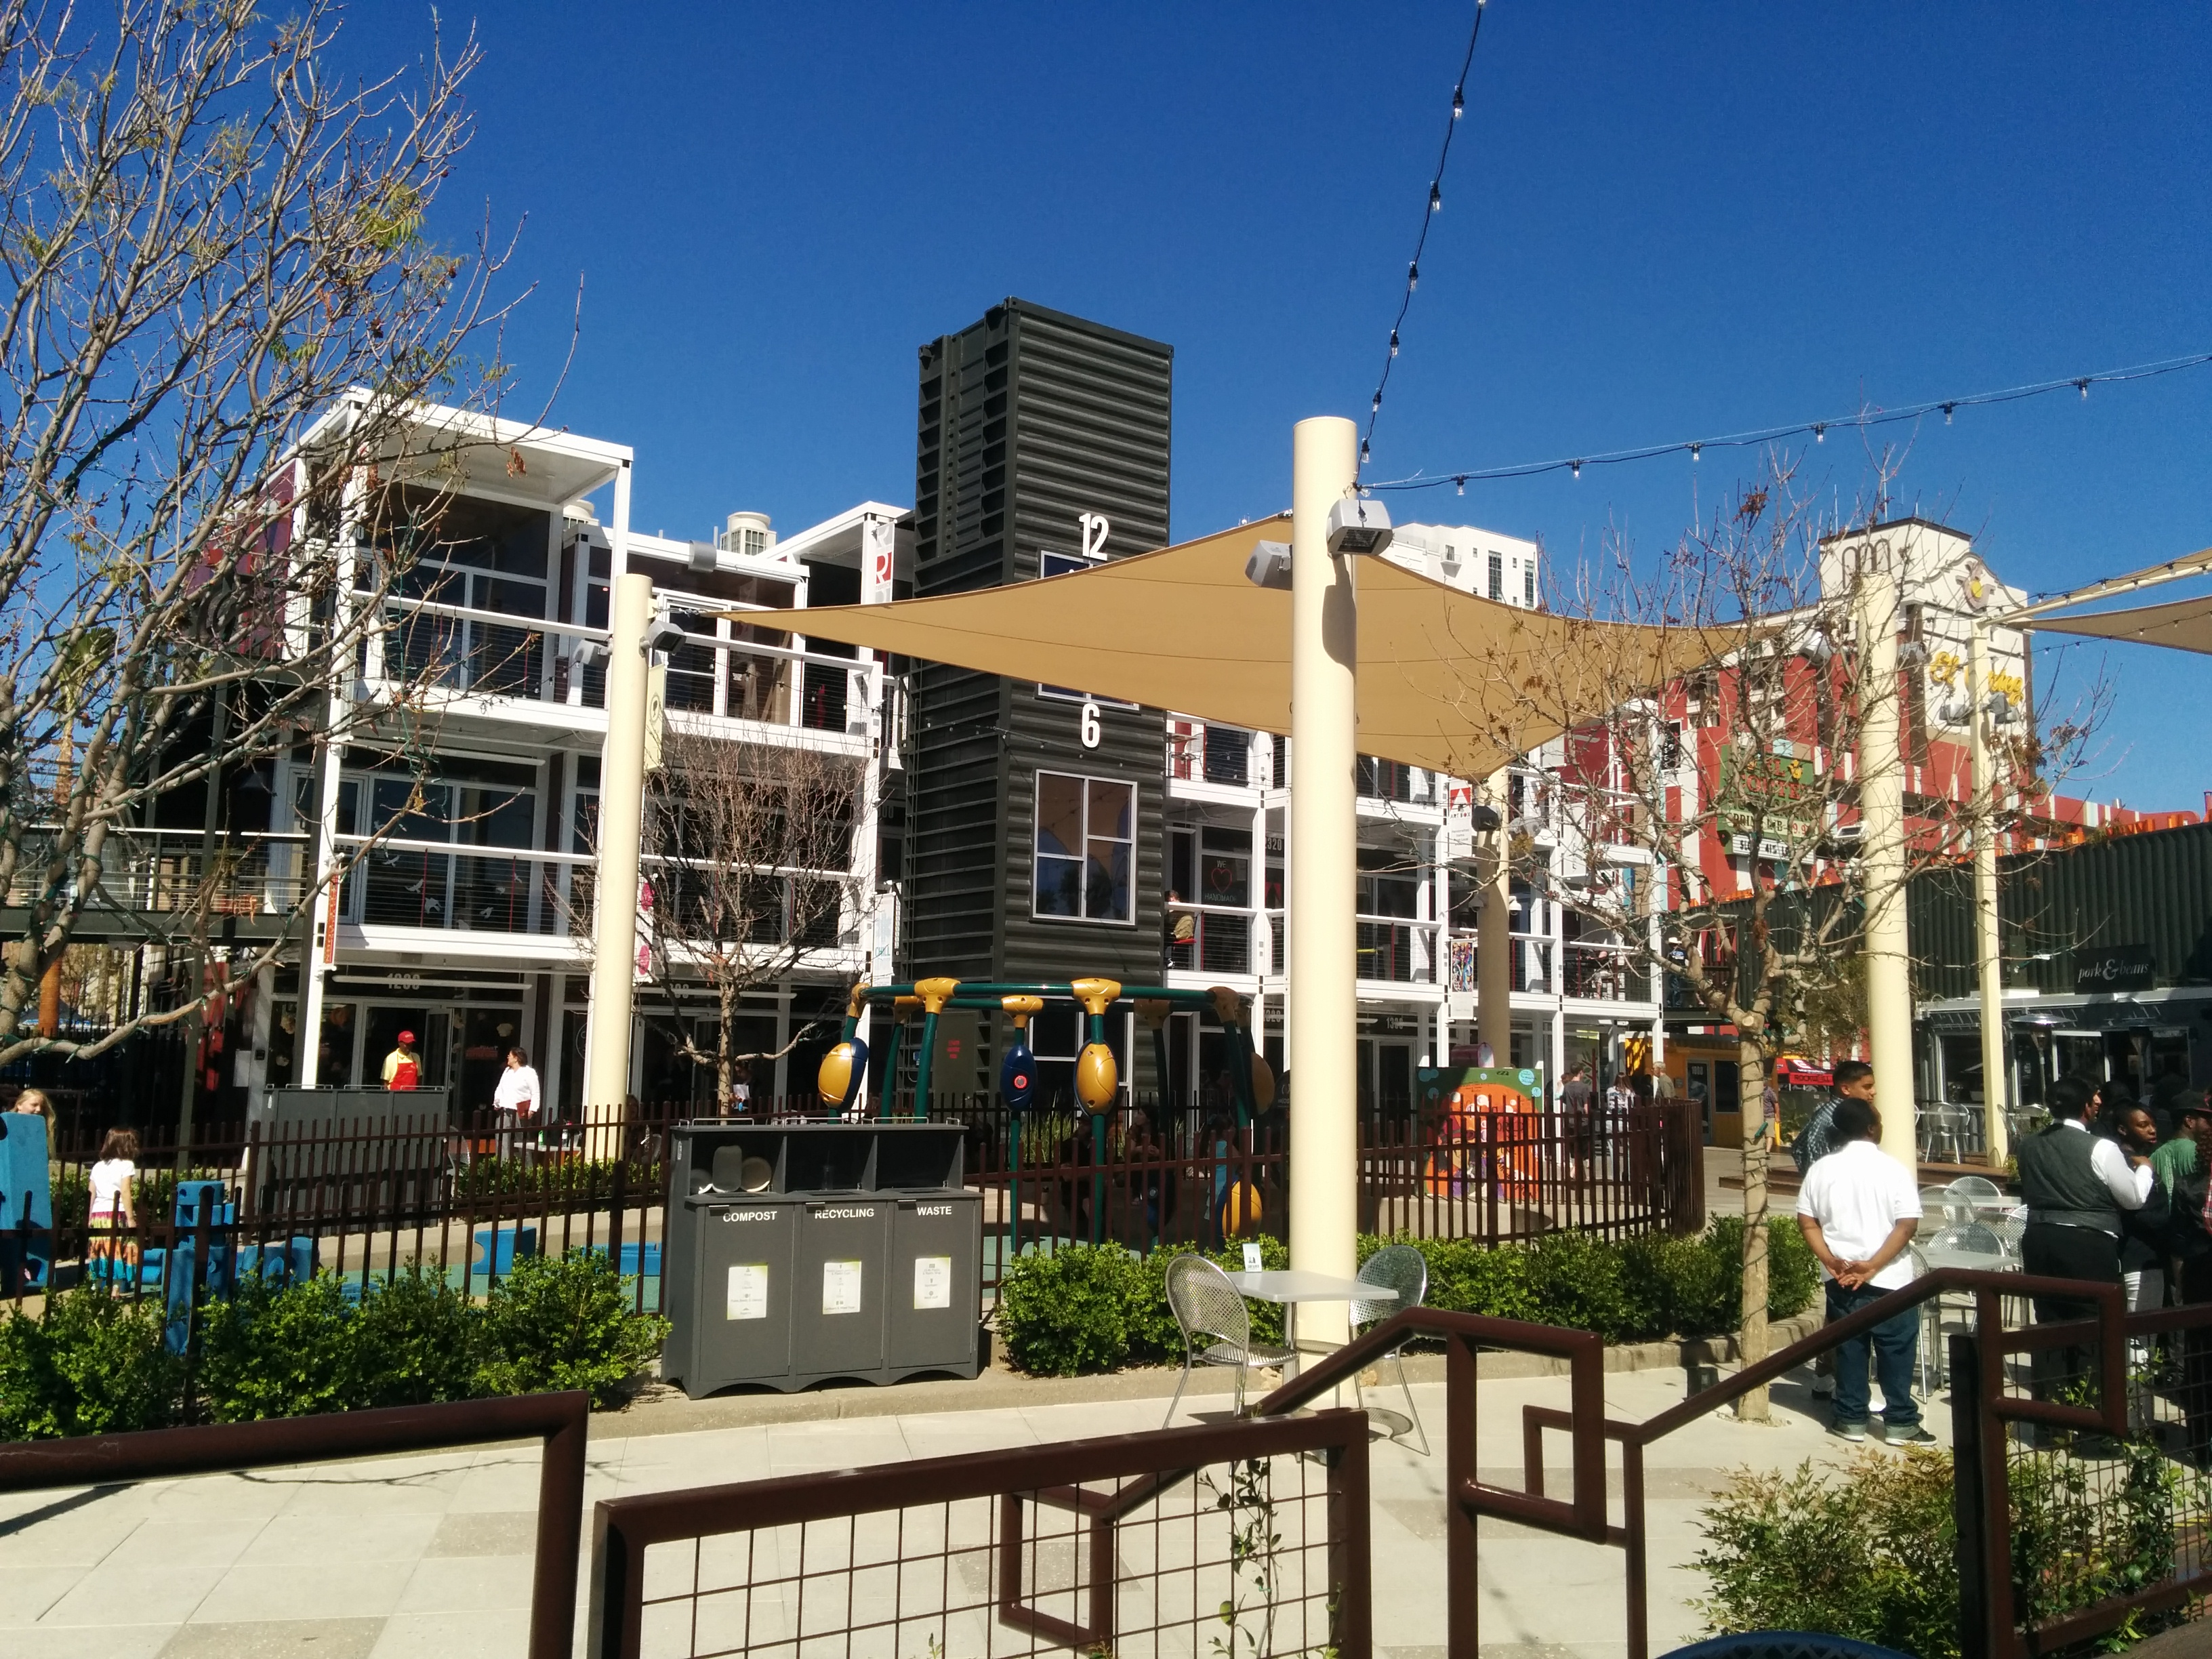 Revitalizing urban cores avc - Container homes in los angeles ...